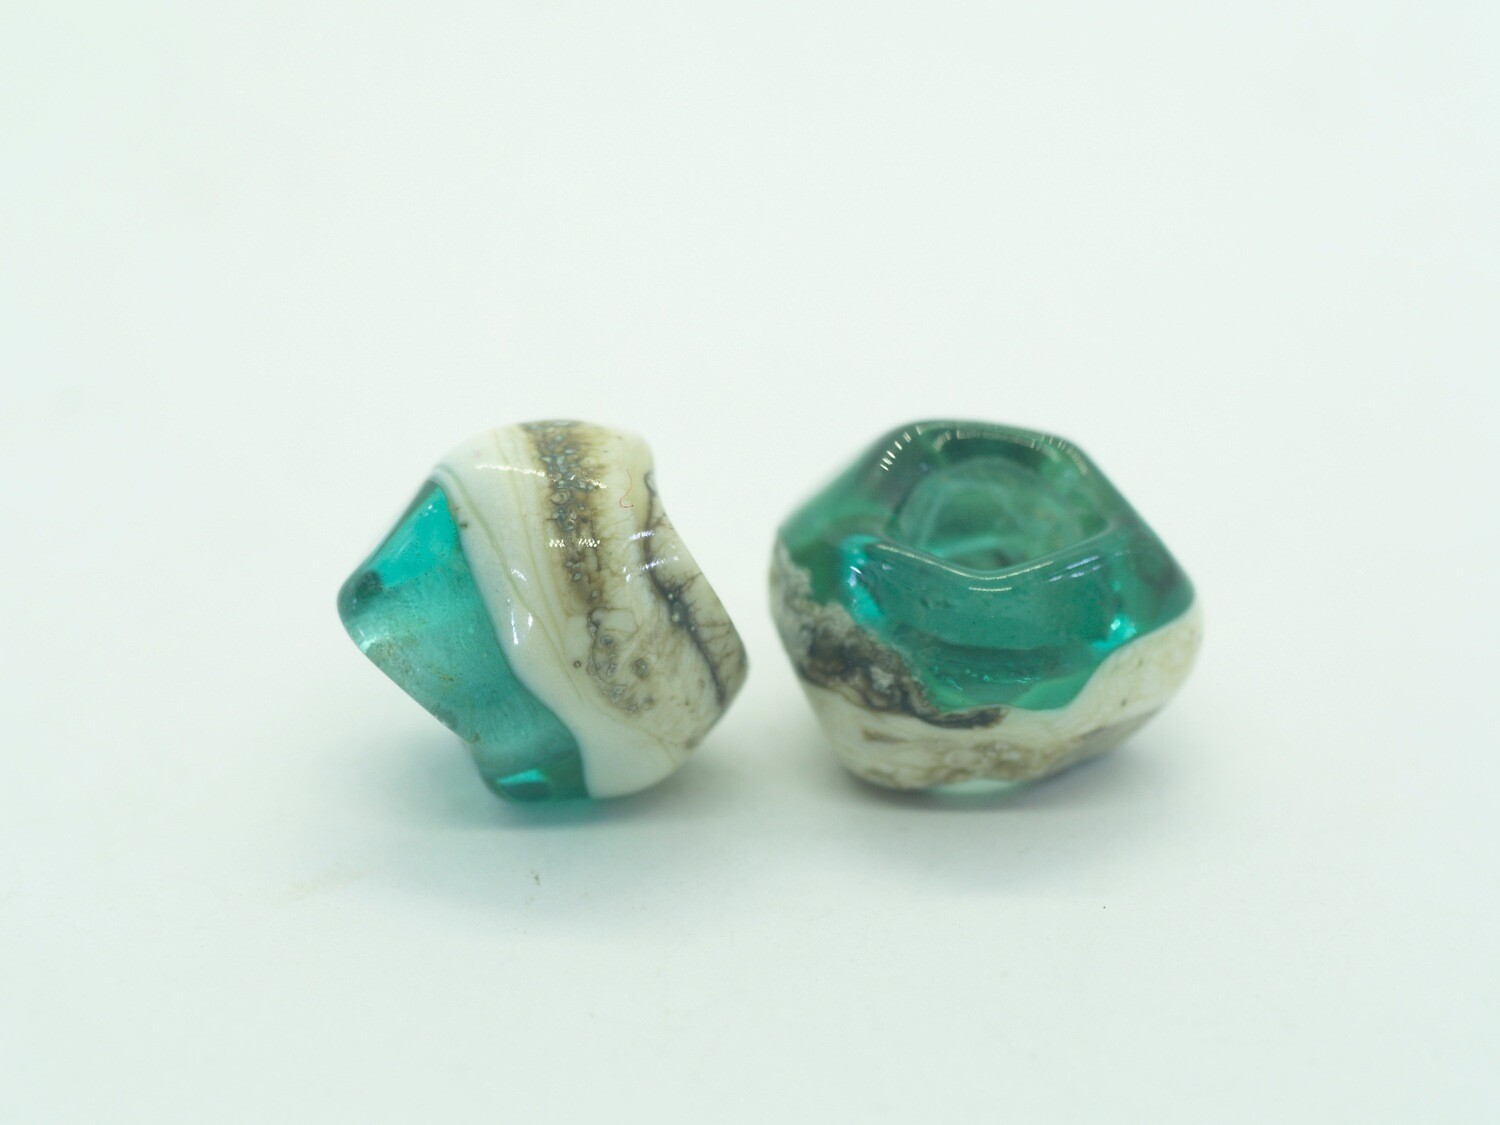 teal and ivory emubeads pair